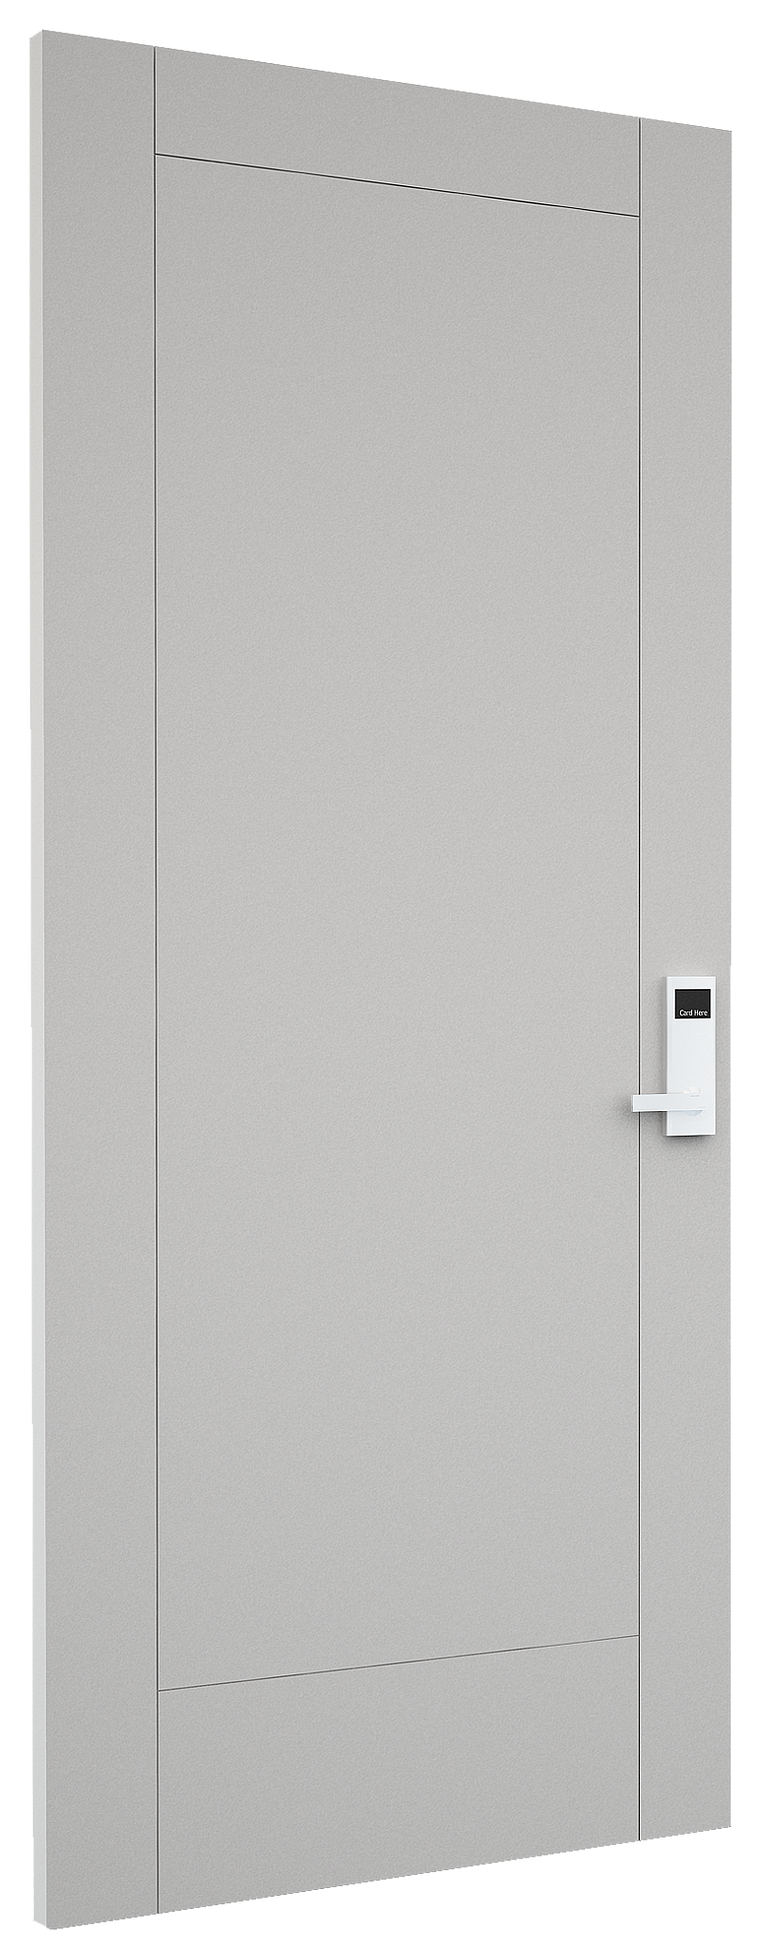 A sleek white-painted door with subtle panel detailing and silver handle